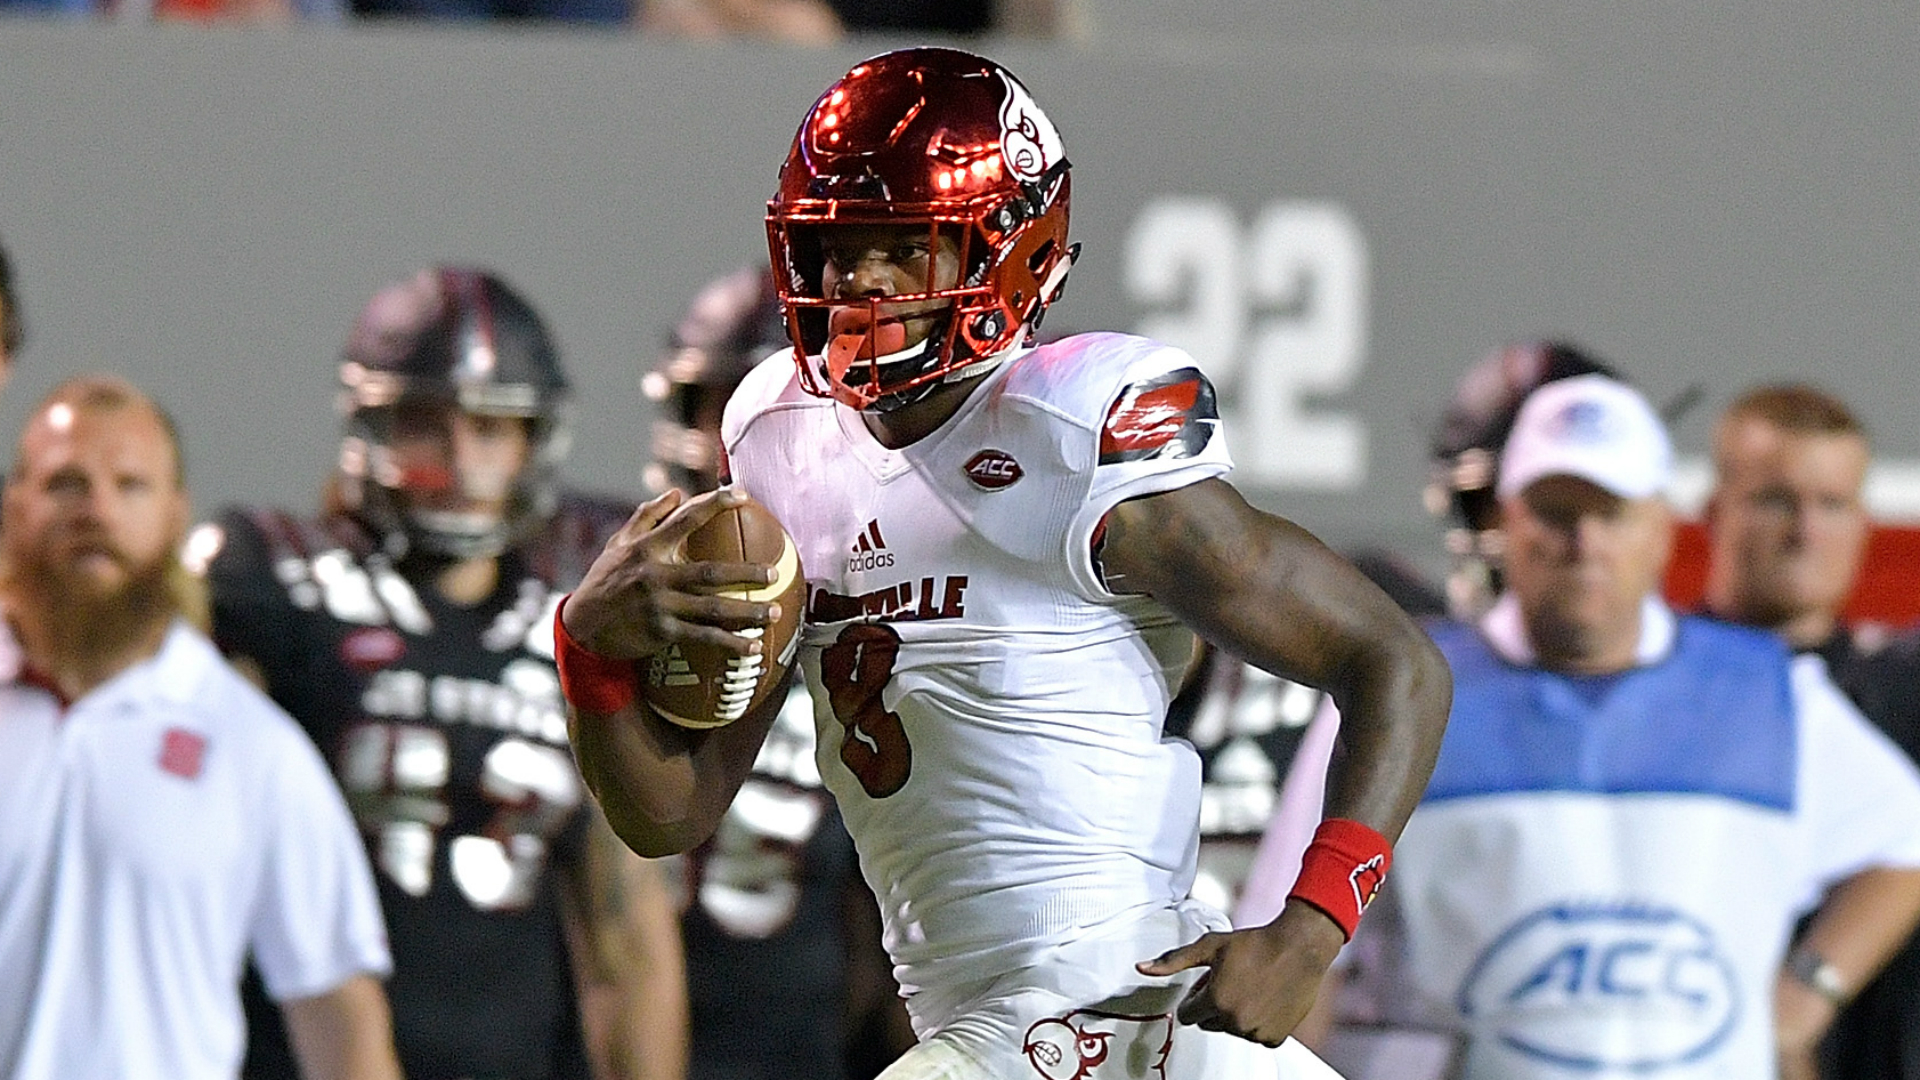 Lamar Jackson involved in brawl against rival Kentucky